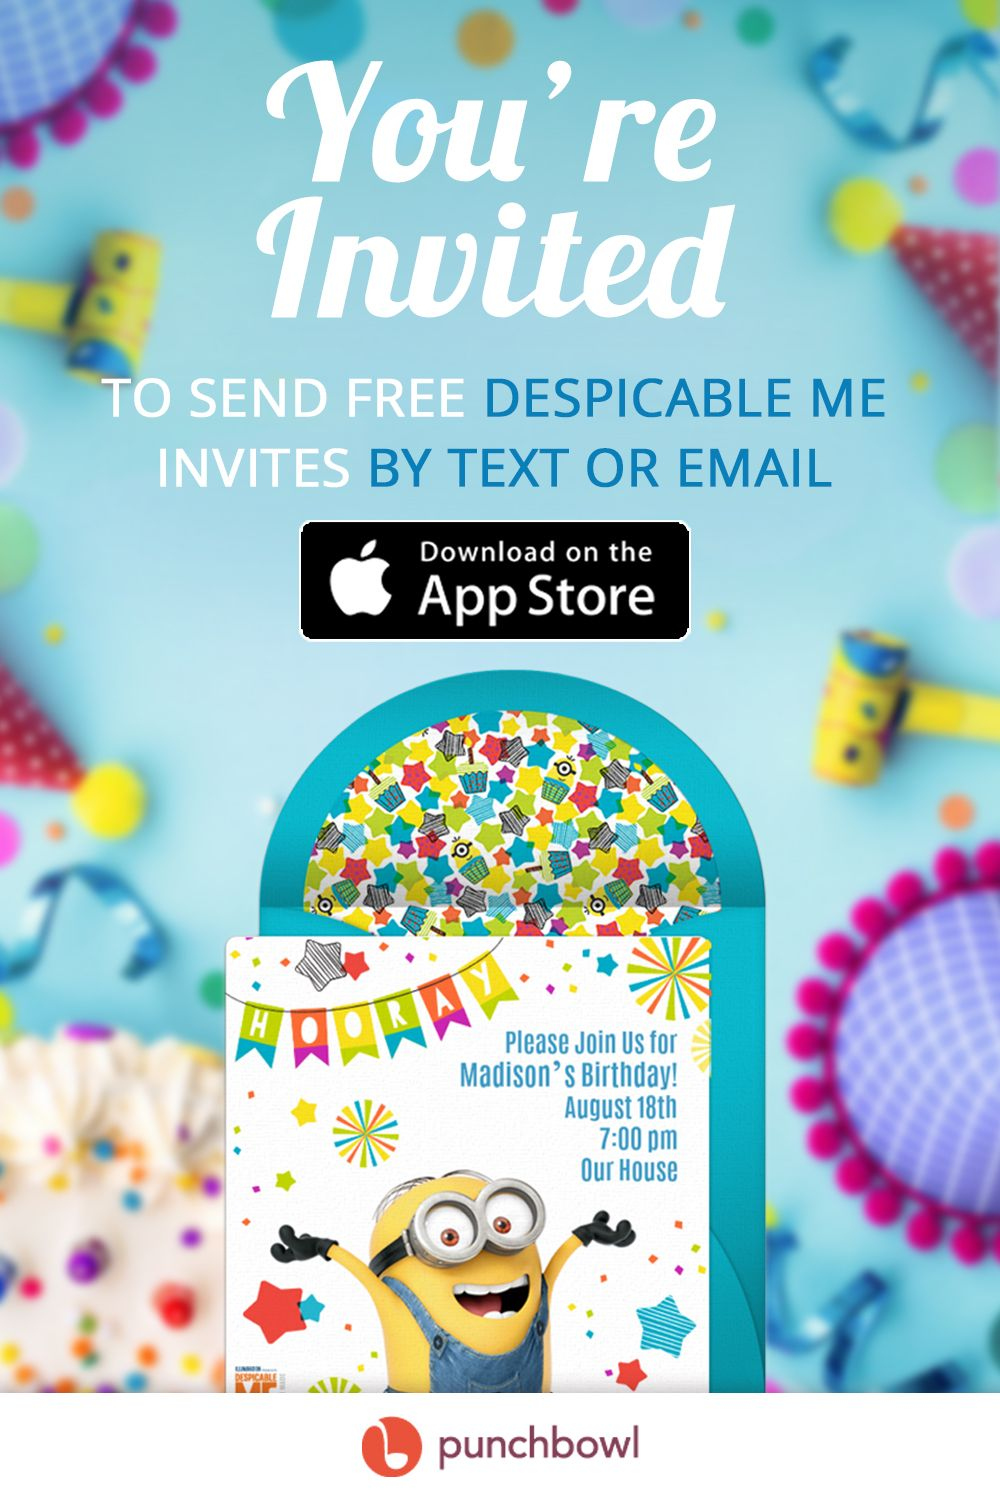 Send free Despicable Me invitations by text message right